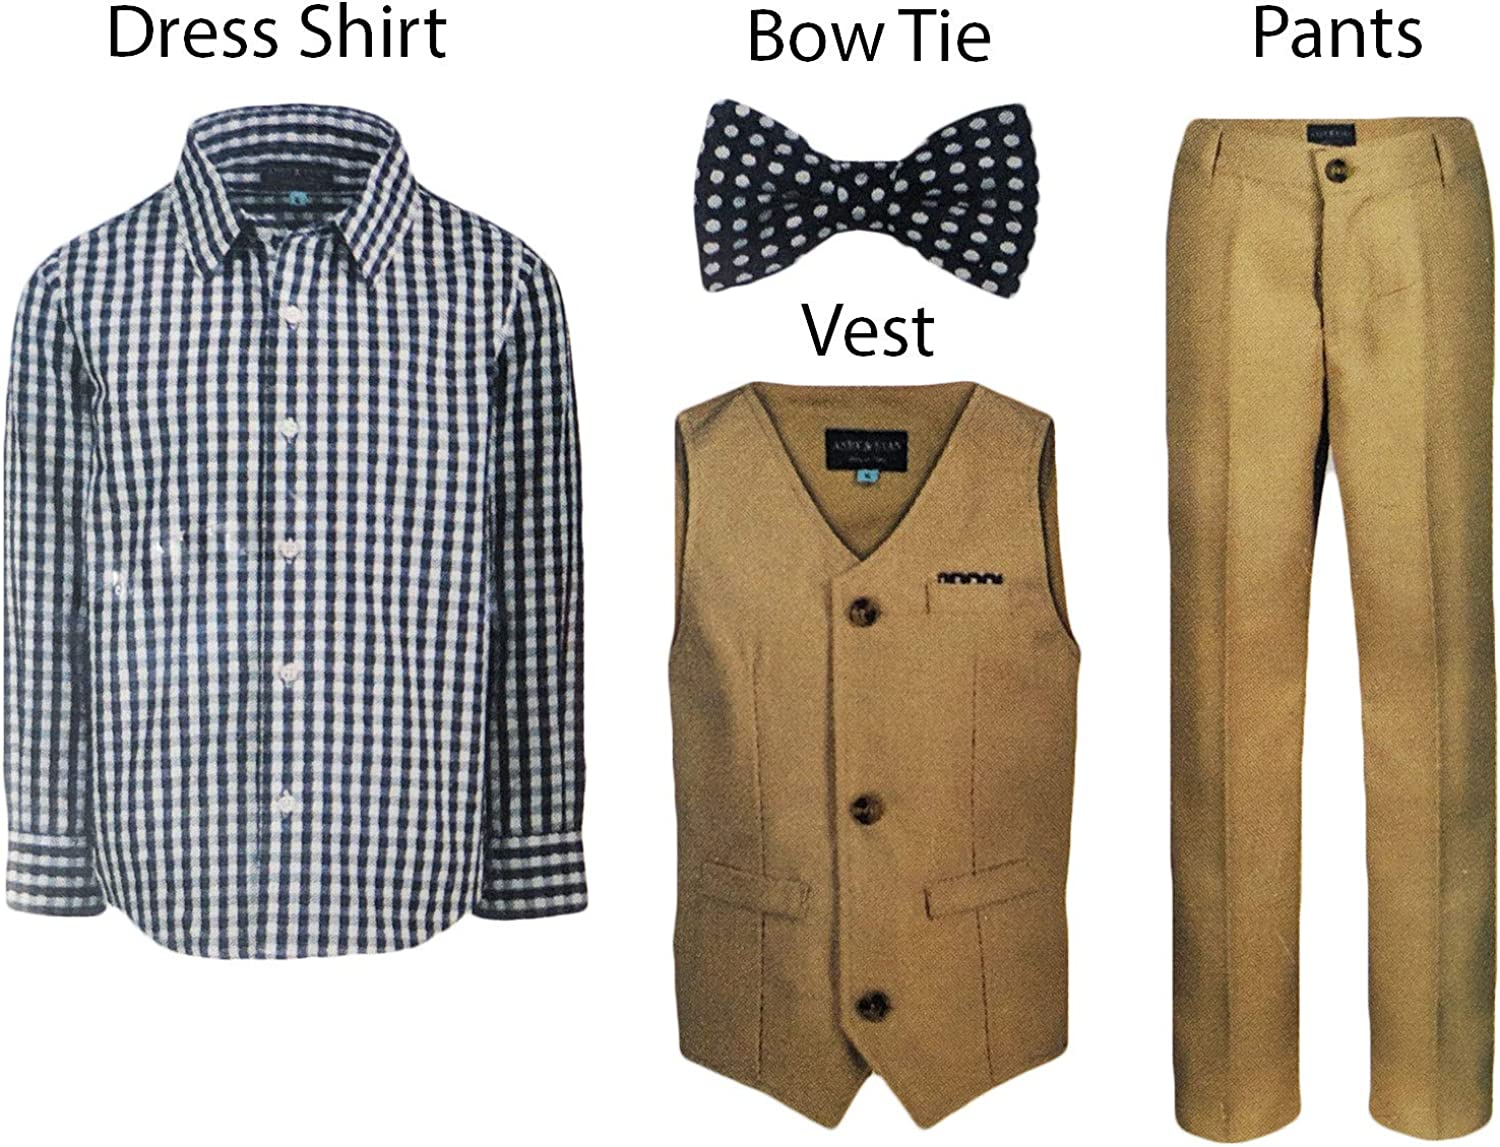 Andy /& Evan Boys Formal 4-Piece Suit with Vest Tie Shirt and Pants